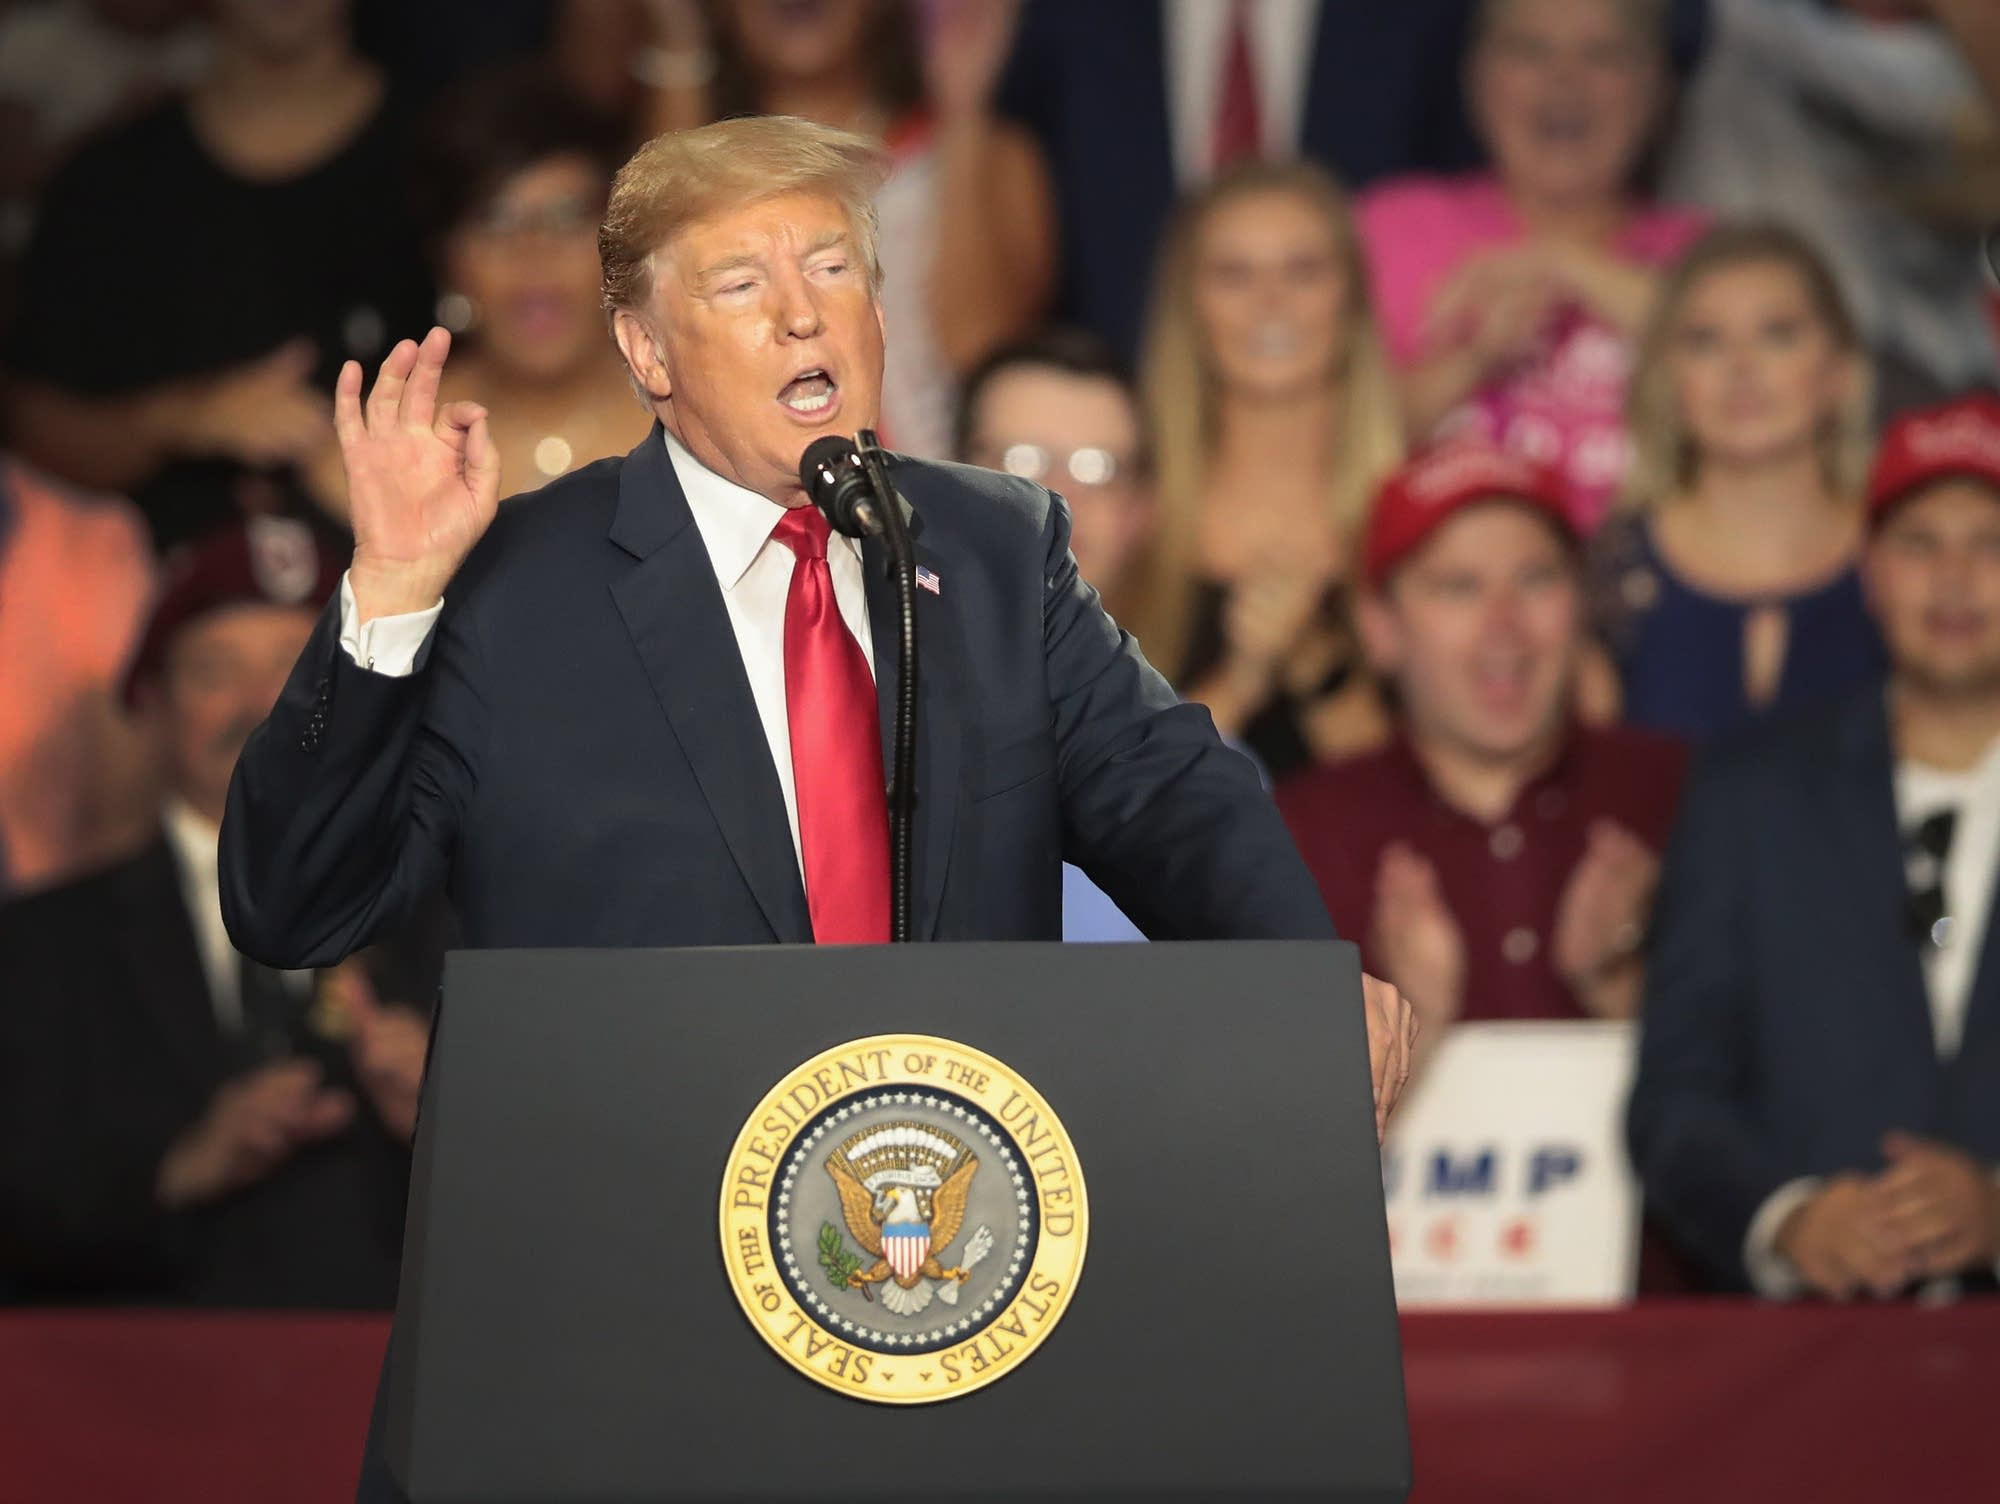 Trump casts midterm elections as a personal referendum